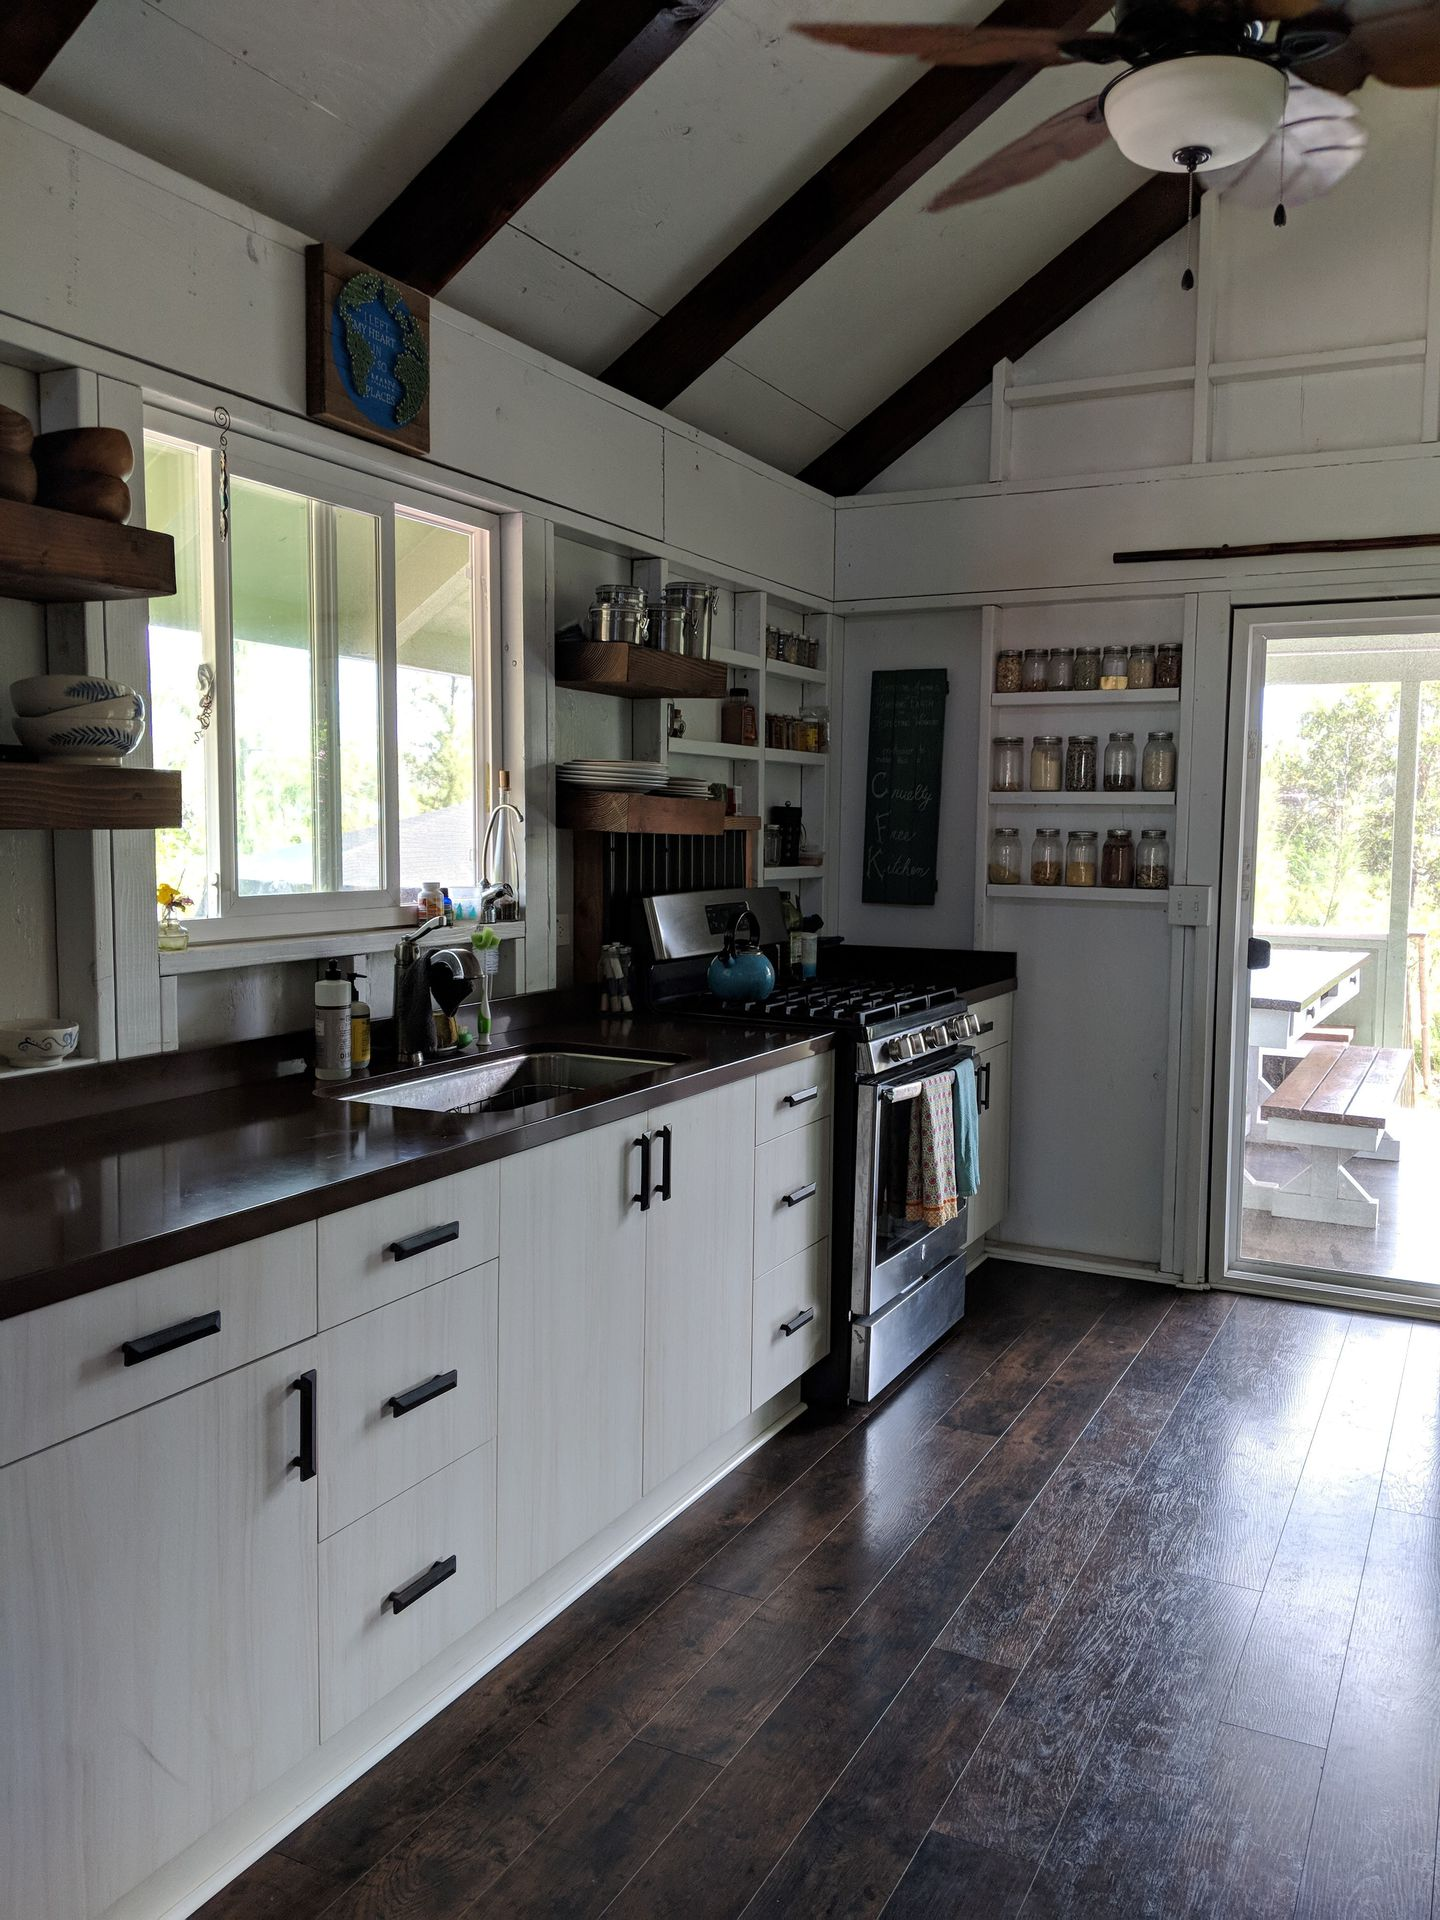 3 bedroom home spacious kitchen - 3 Bedroom Tiny House